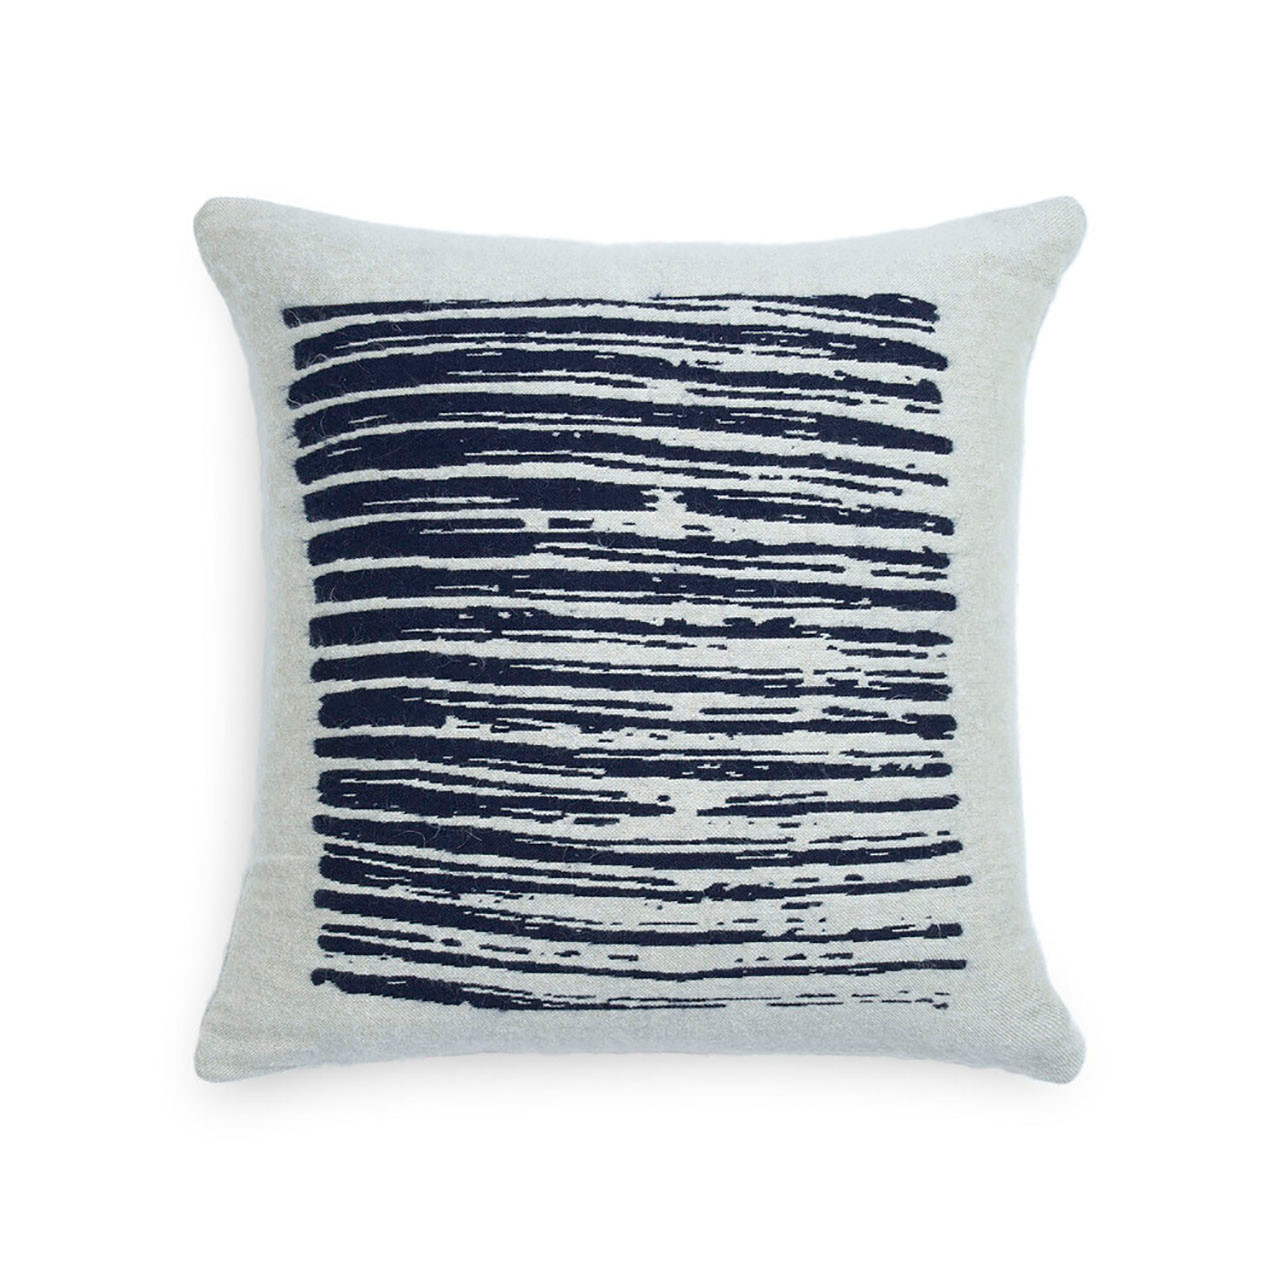 White/Navy Lines Pillow - Square